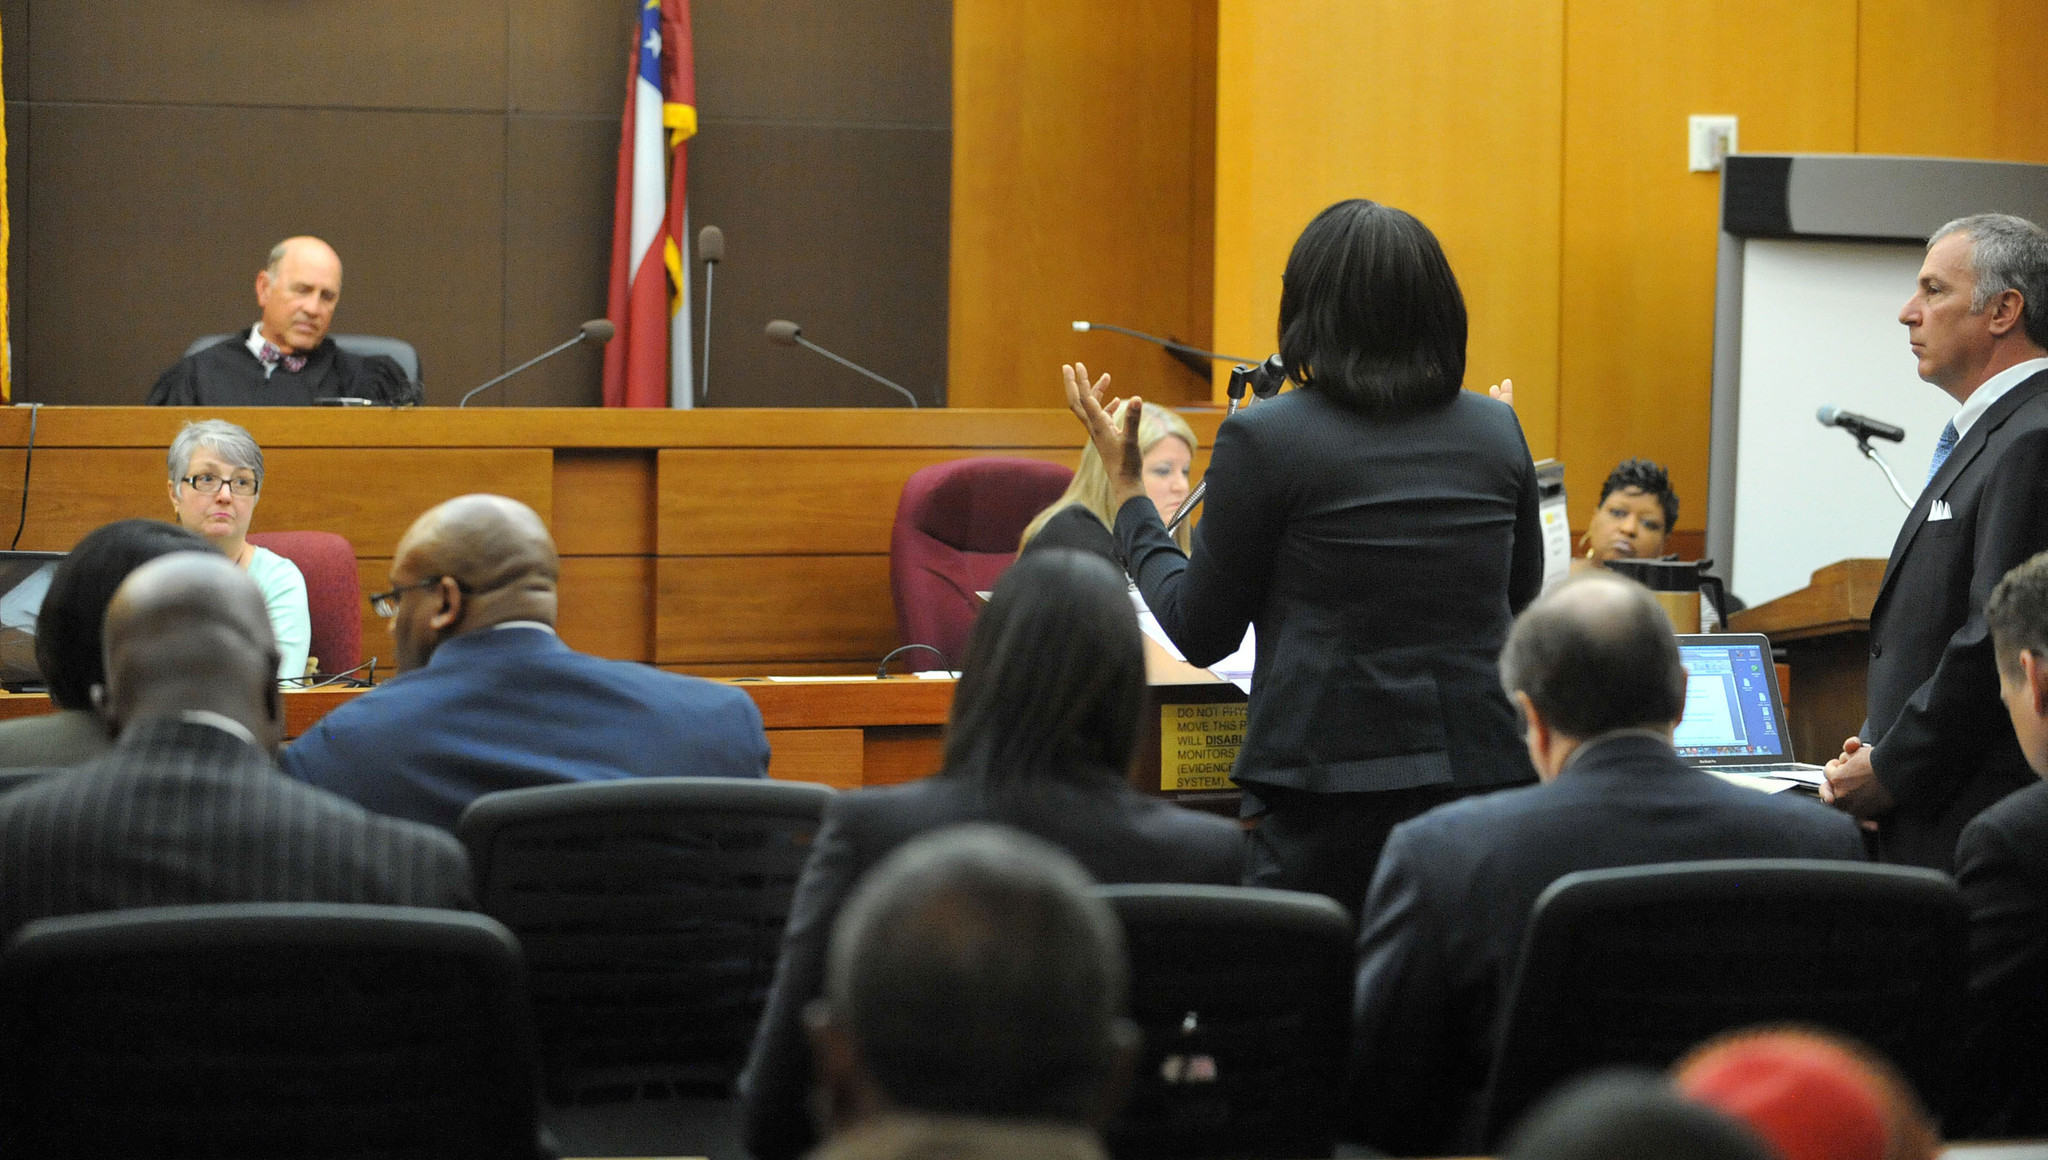 Cheating Case In Atlanta : Jail for of ex educators in atlanta test cheating case